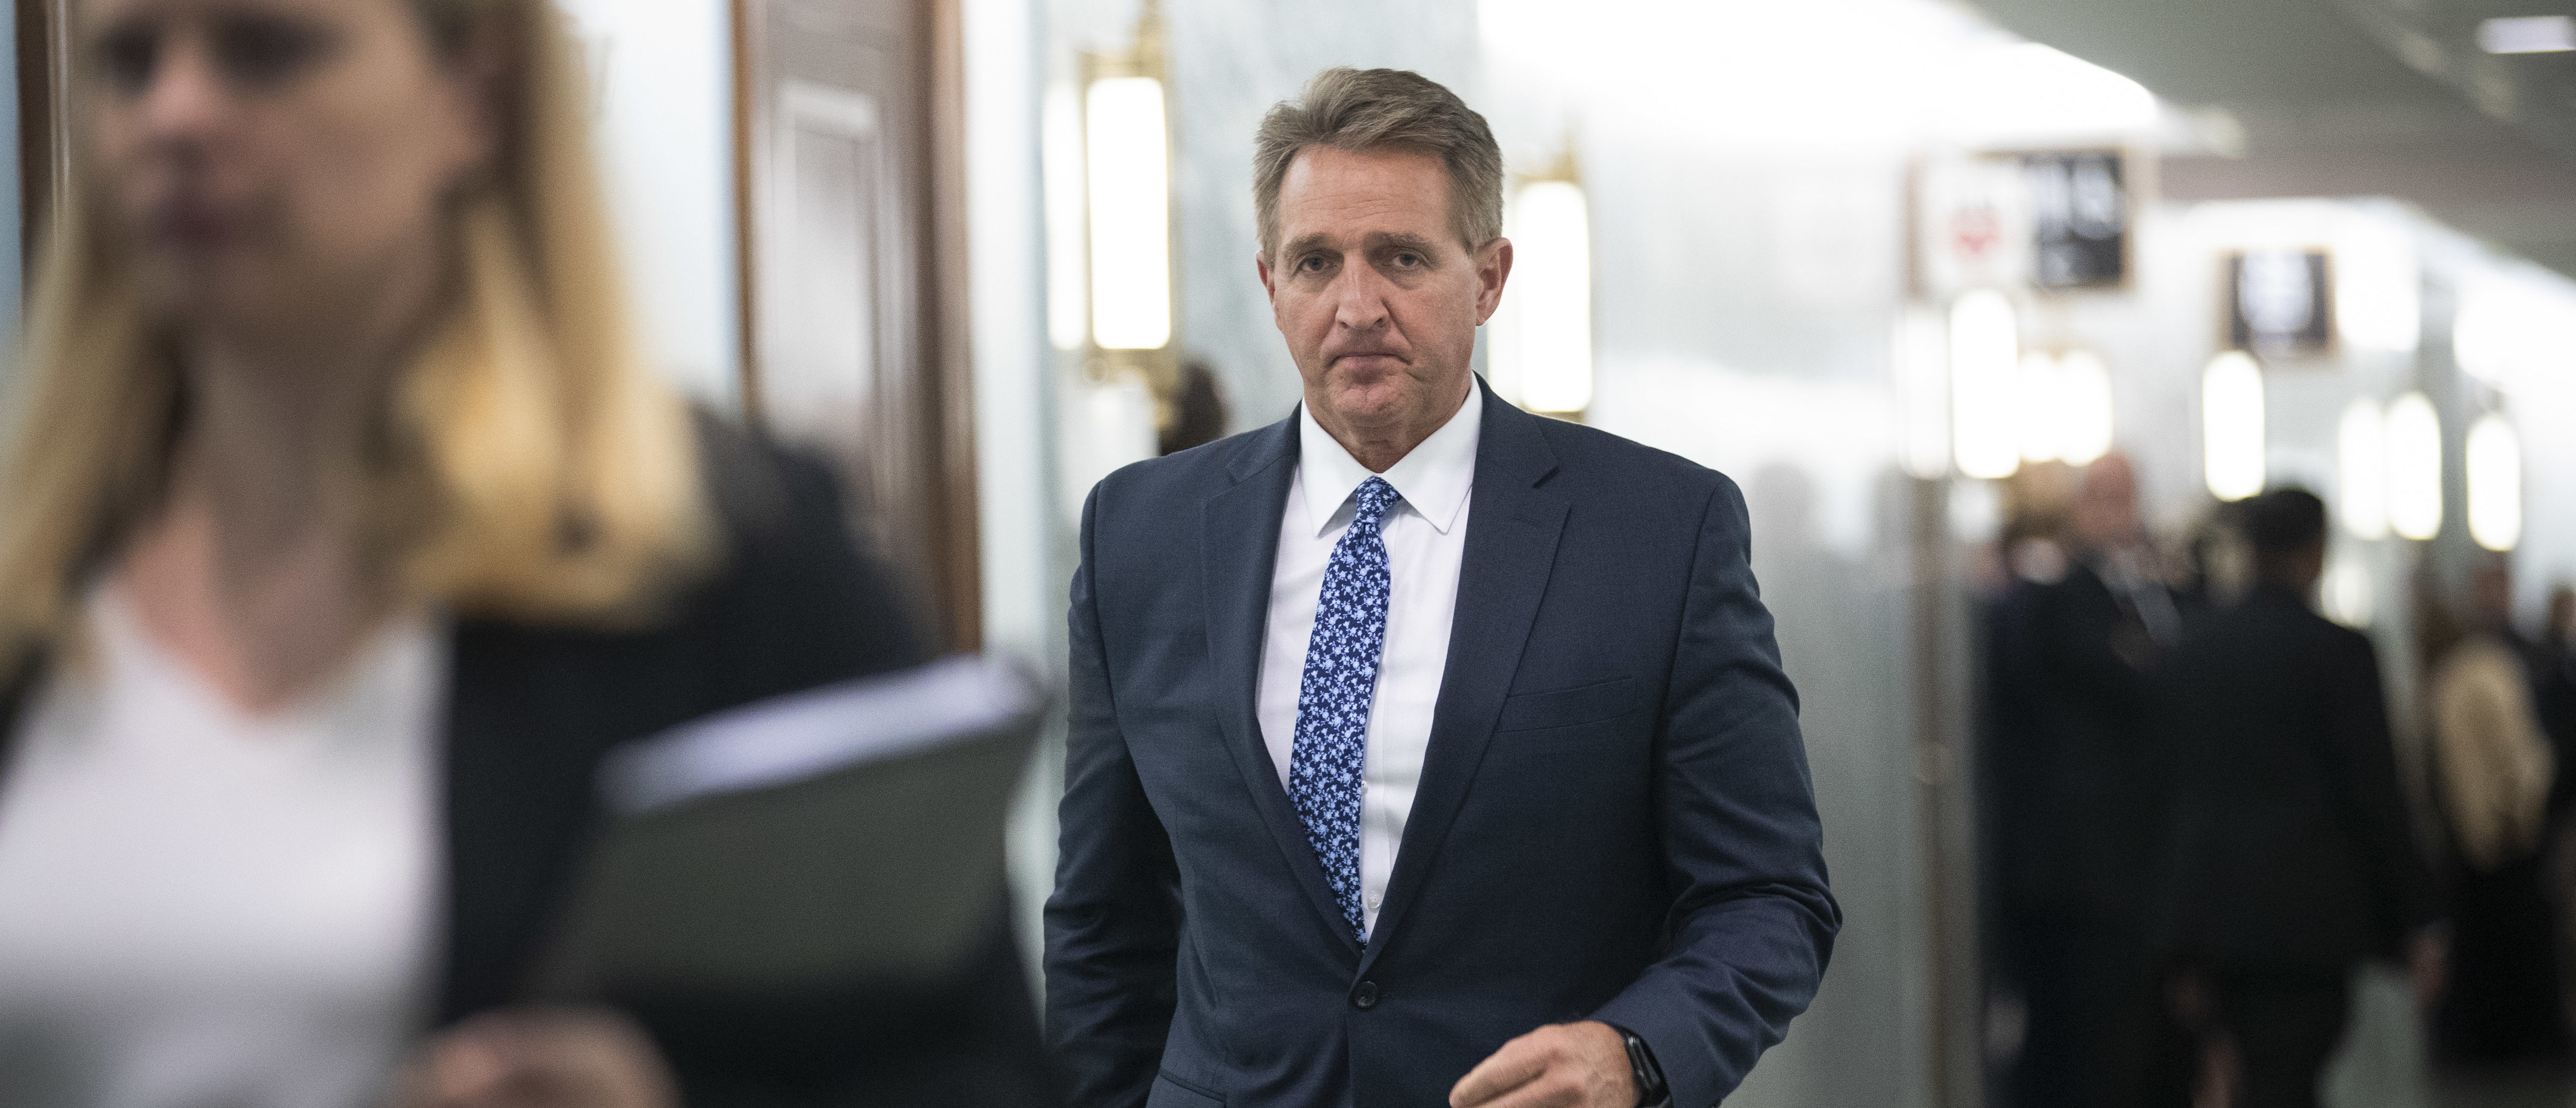 Sen. Jeff Flake (R-AZ) arrives back at the Senate Judiciary Committee hearing following a break, in the Dirksen Senate Office Building on Capitol Hill, September 27, 2018 in Washington, D.C. (Photo by Drew Angerer/Getty Images)